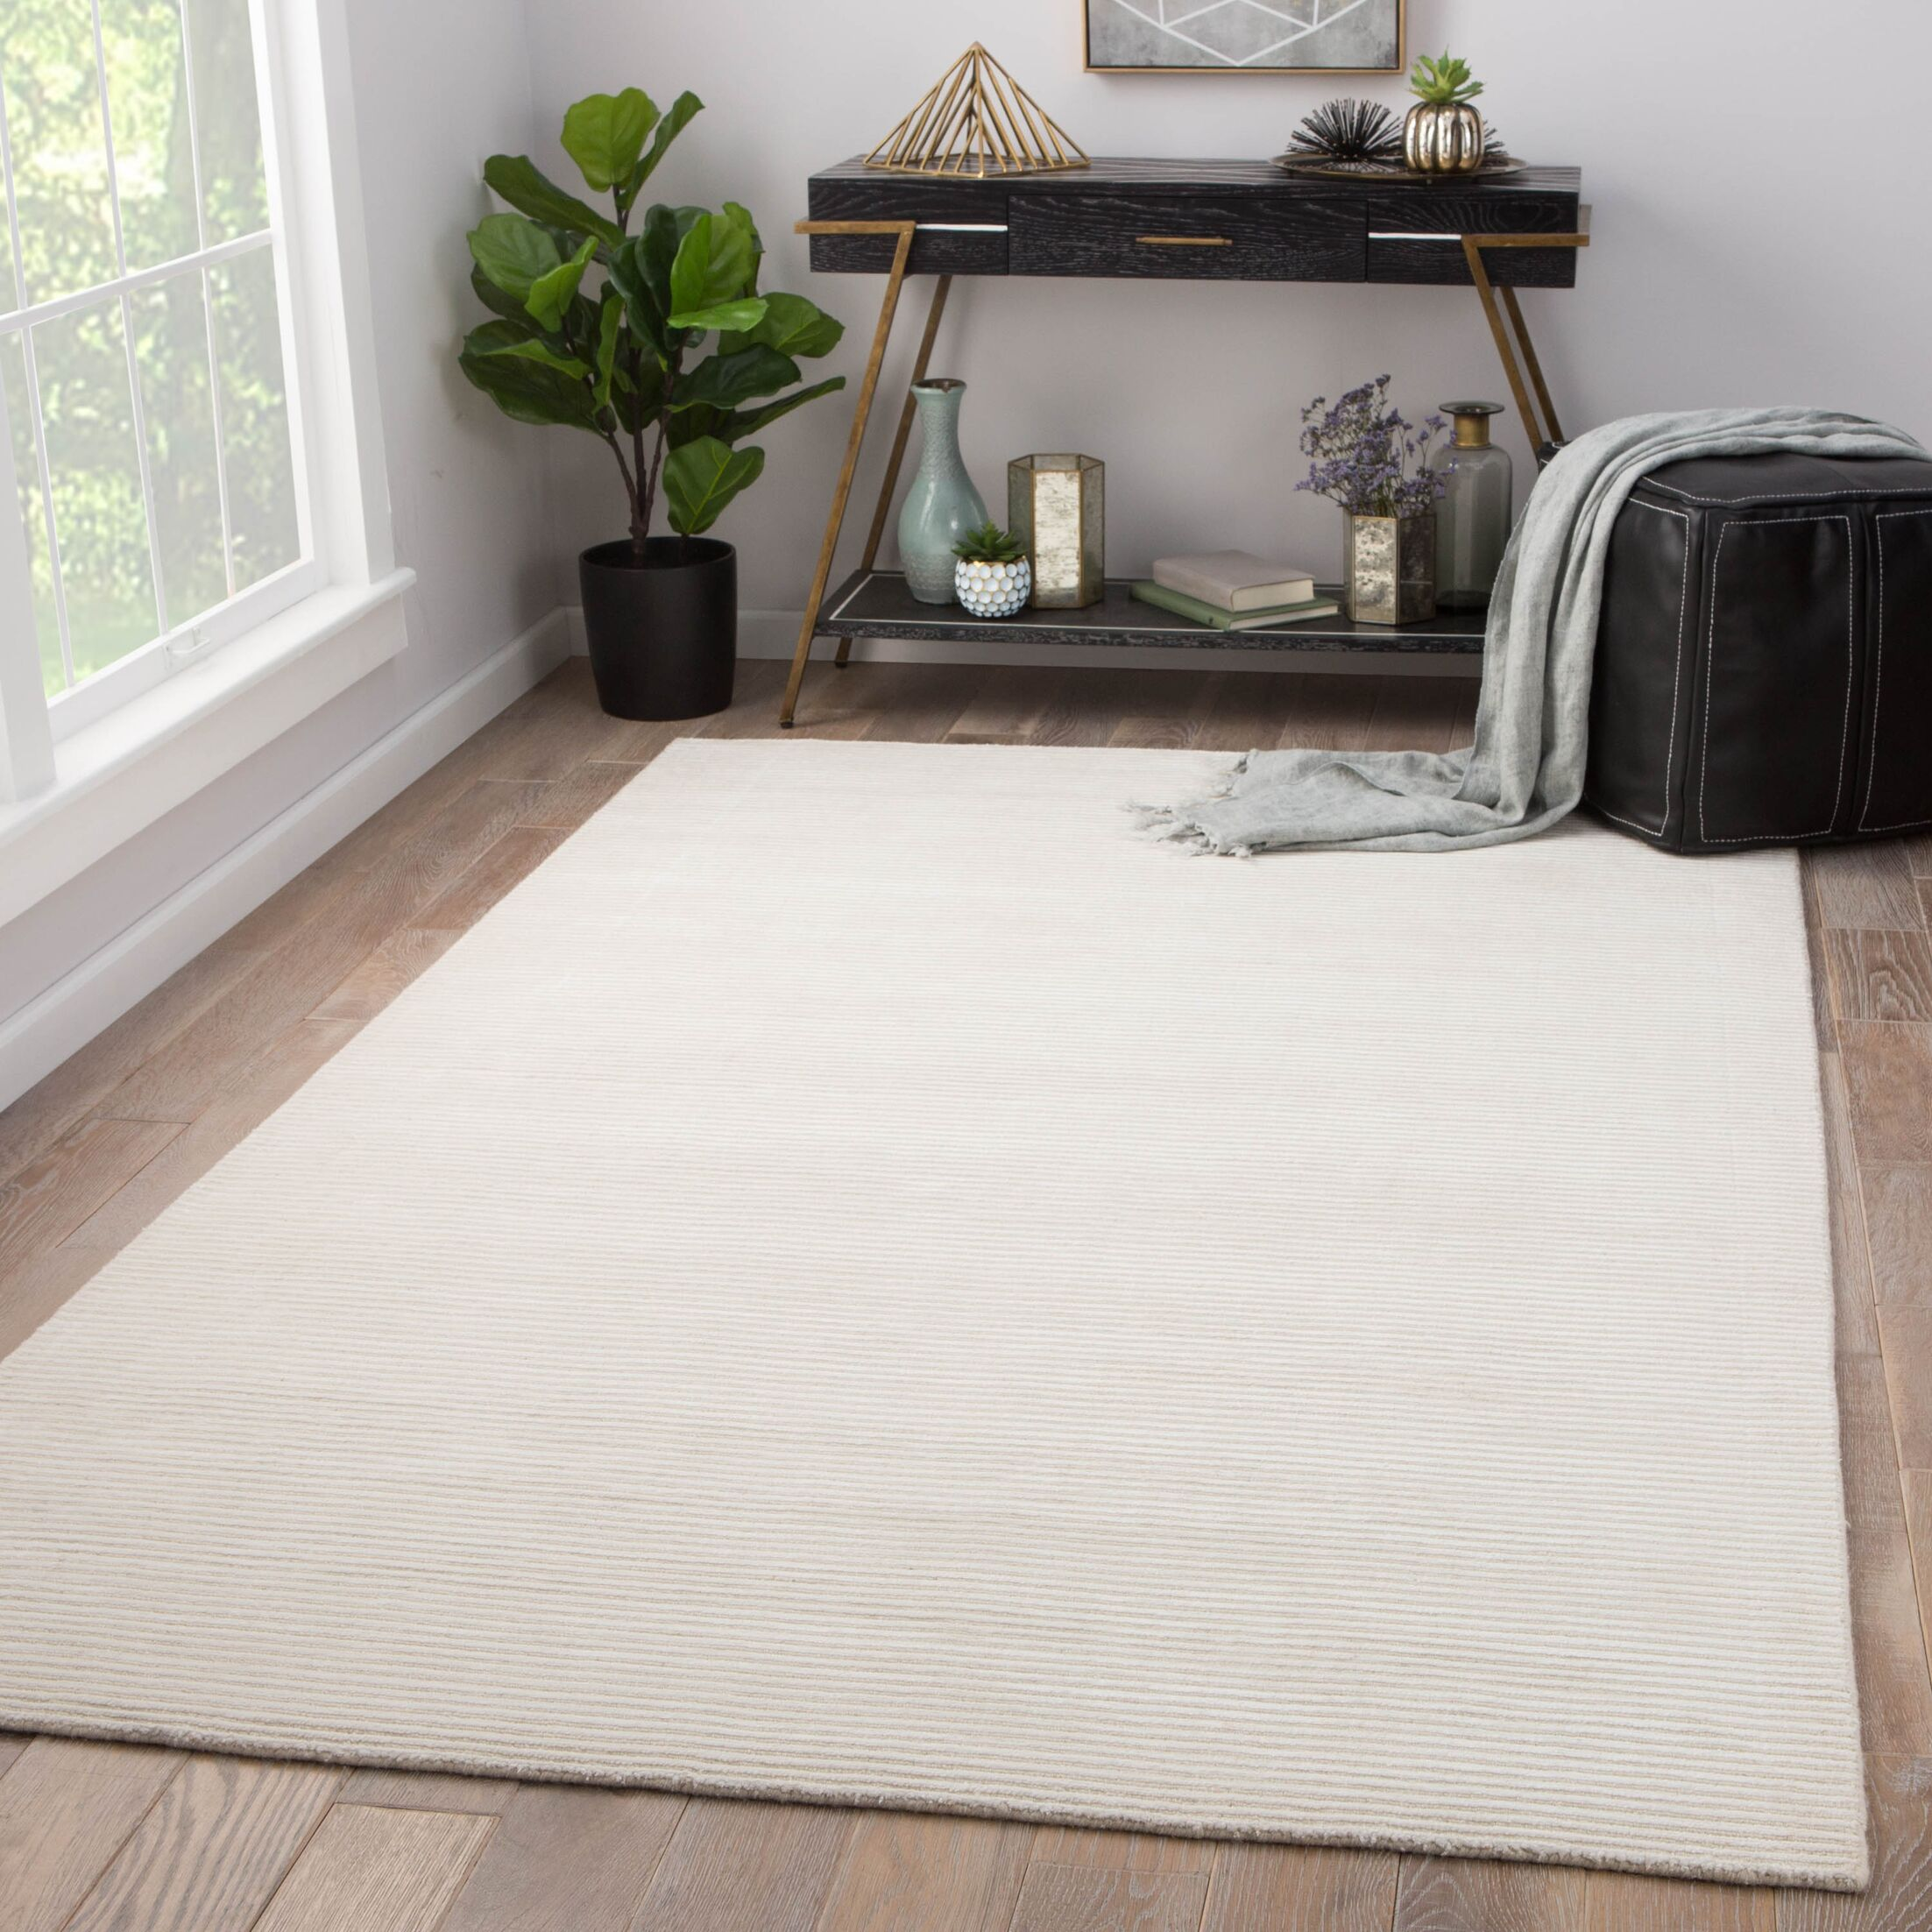 Phase Hand Woven White Area Rug Rug Size: Rectangle 8' x 10'